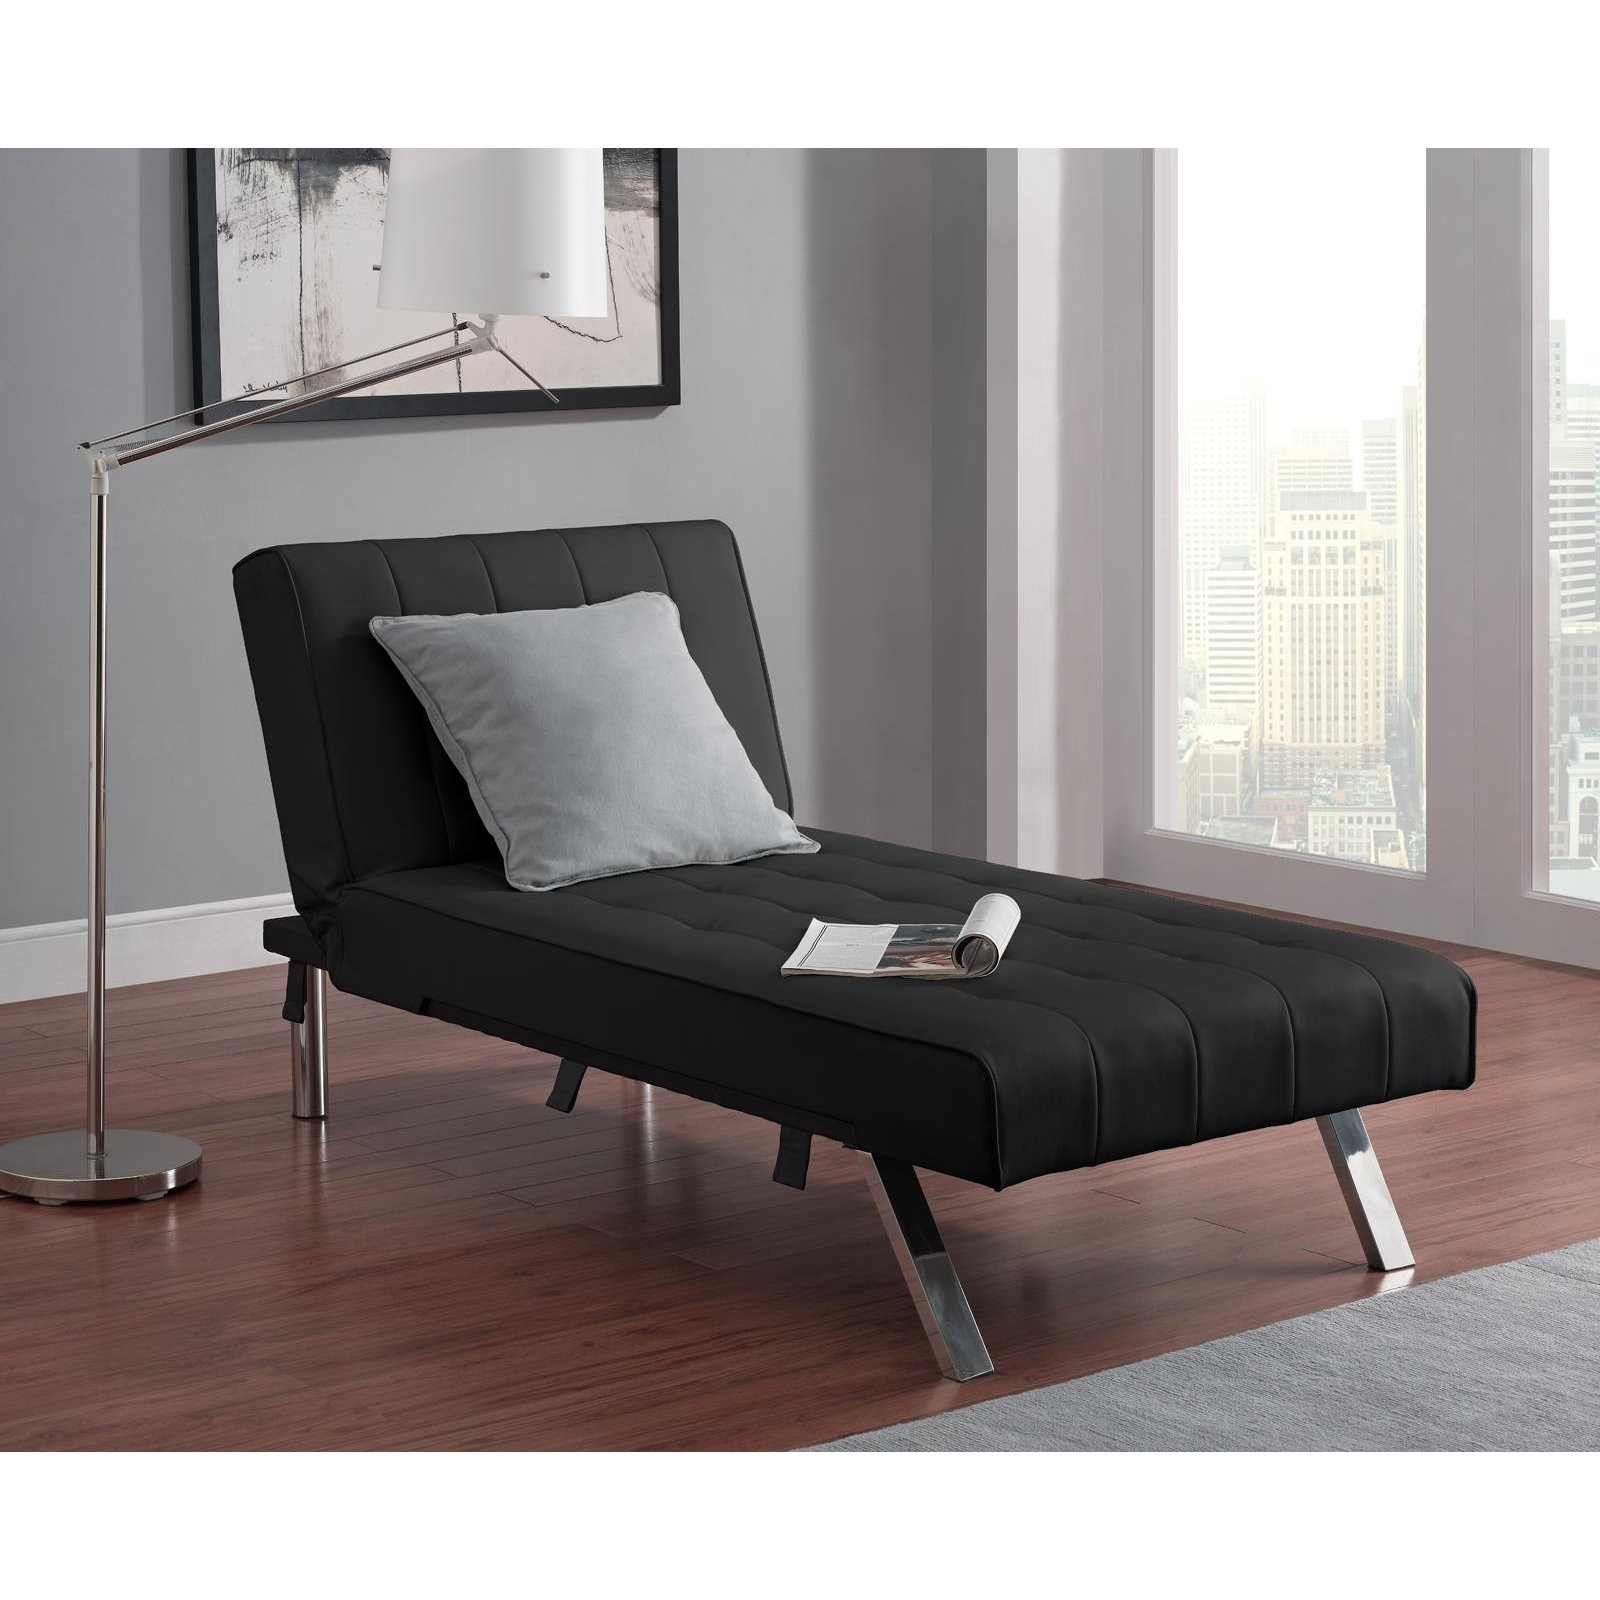 Well Known Indoor Chaise Lounges Intended For Furniture : Wonderful Indoor Chaise Lounge Under $100 Awesome Dhp (View 15 of 15)